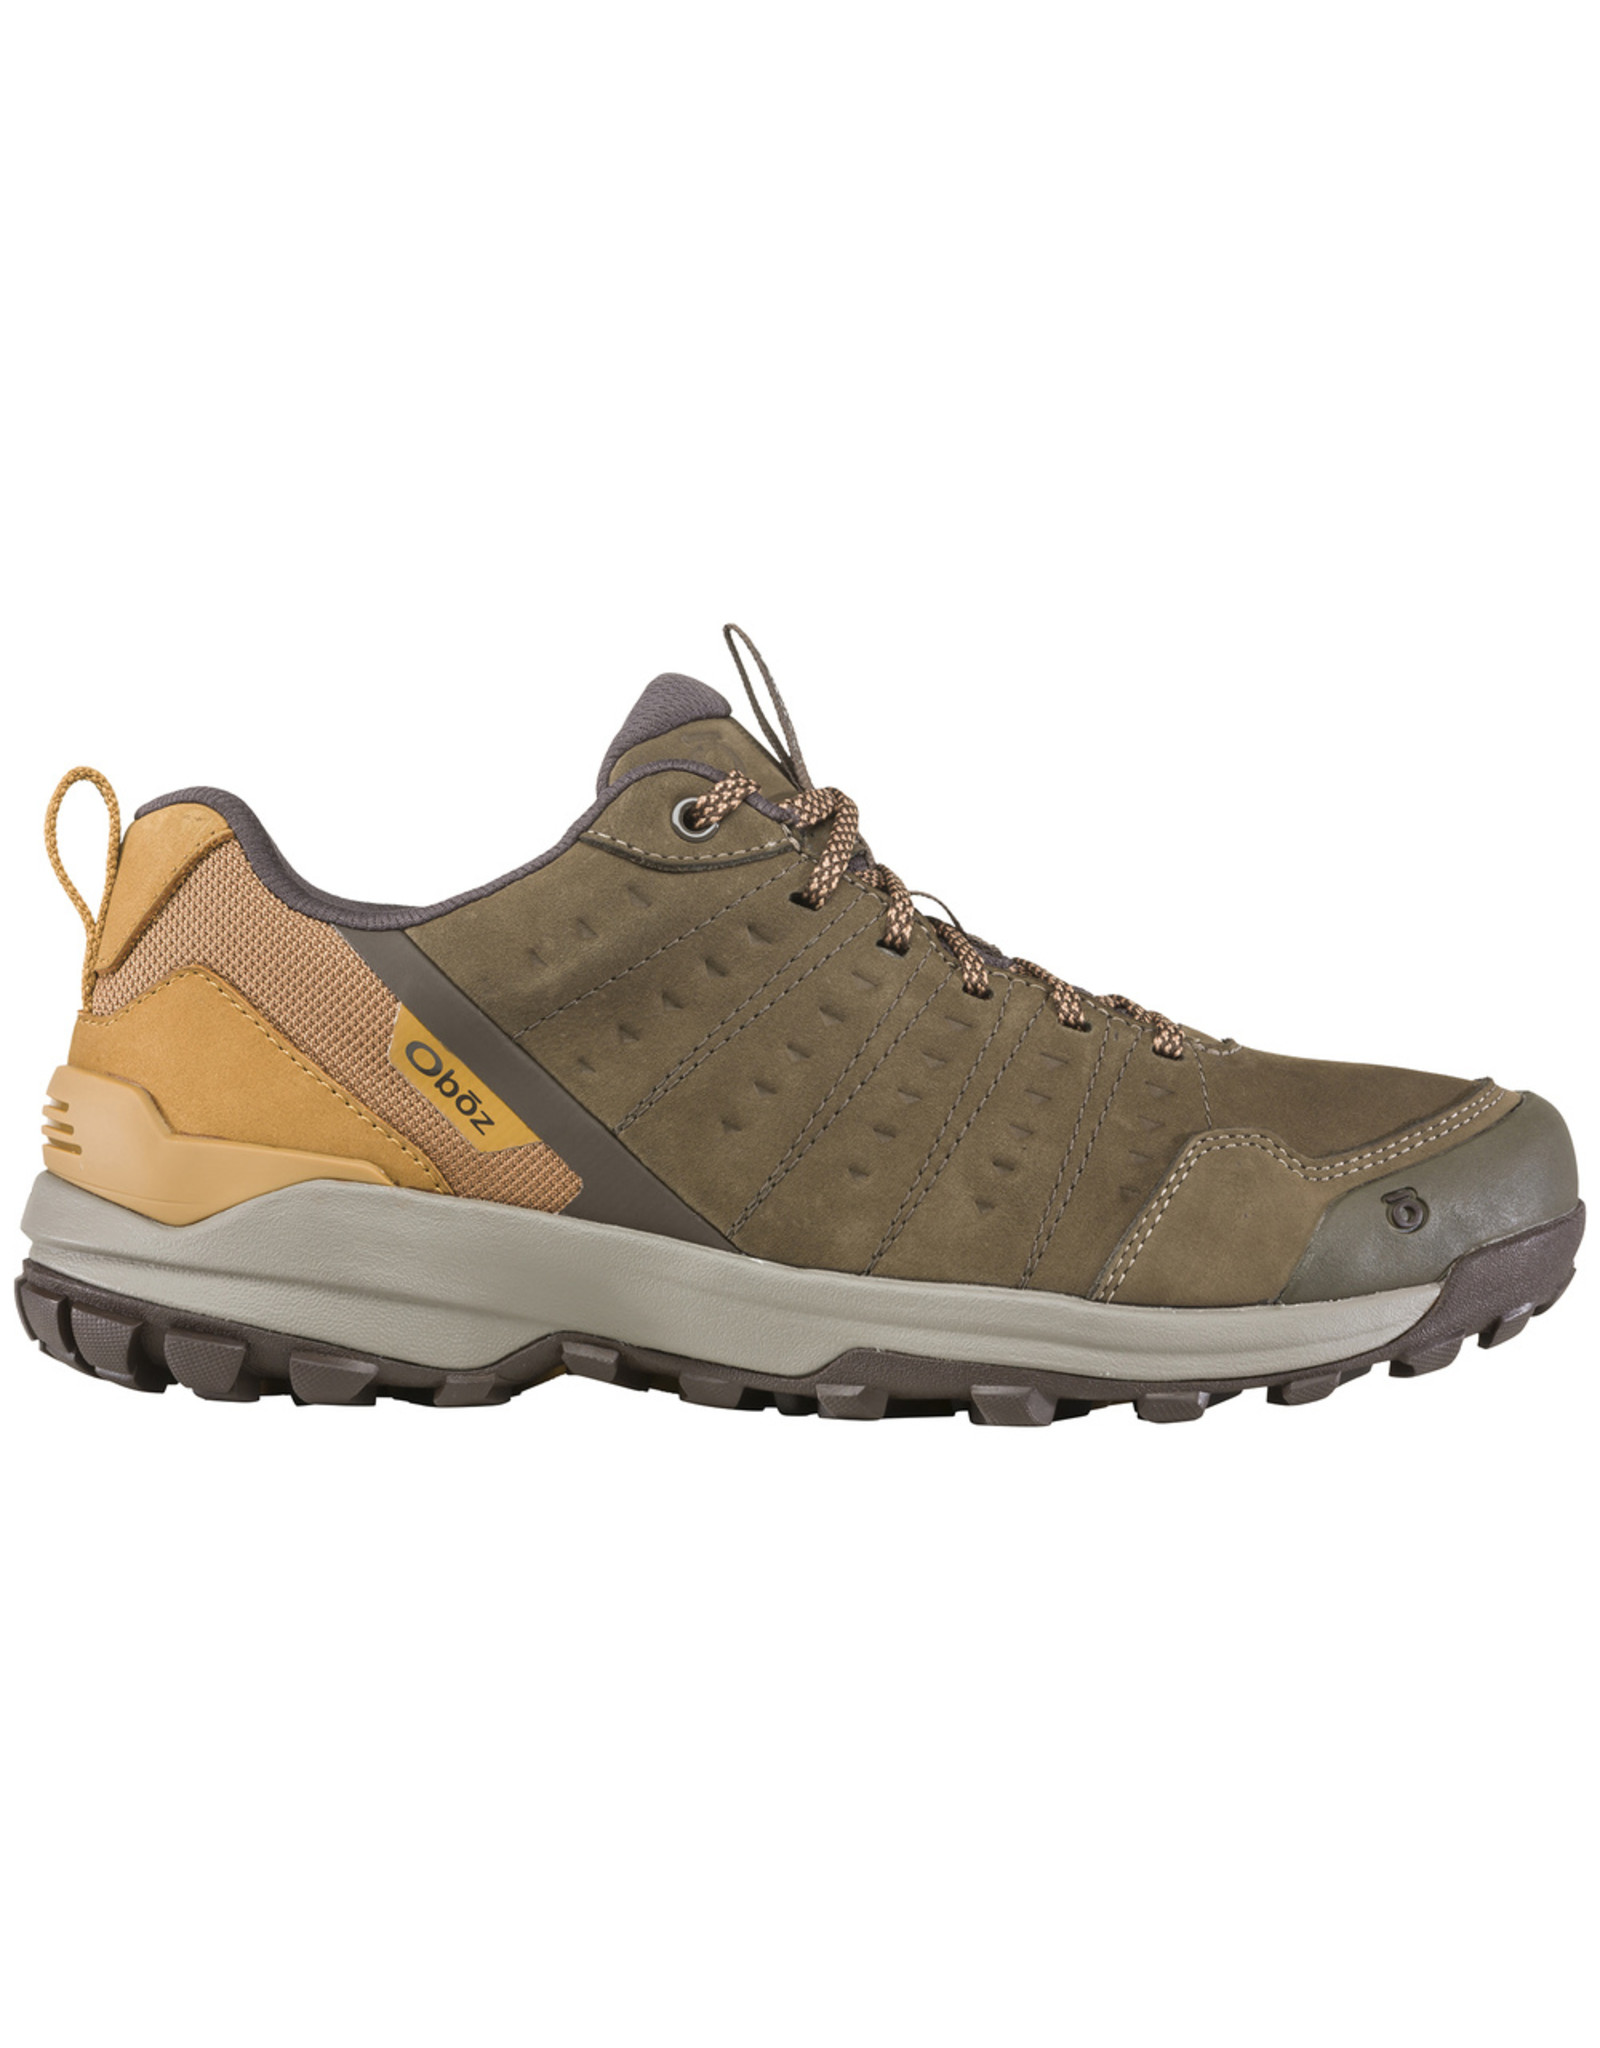 Oboz Sypes Low Leather B-Dry Hiking Shoe - Men's